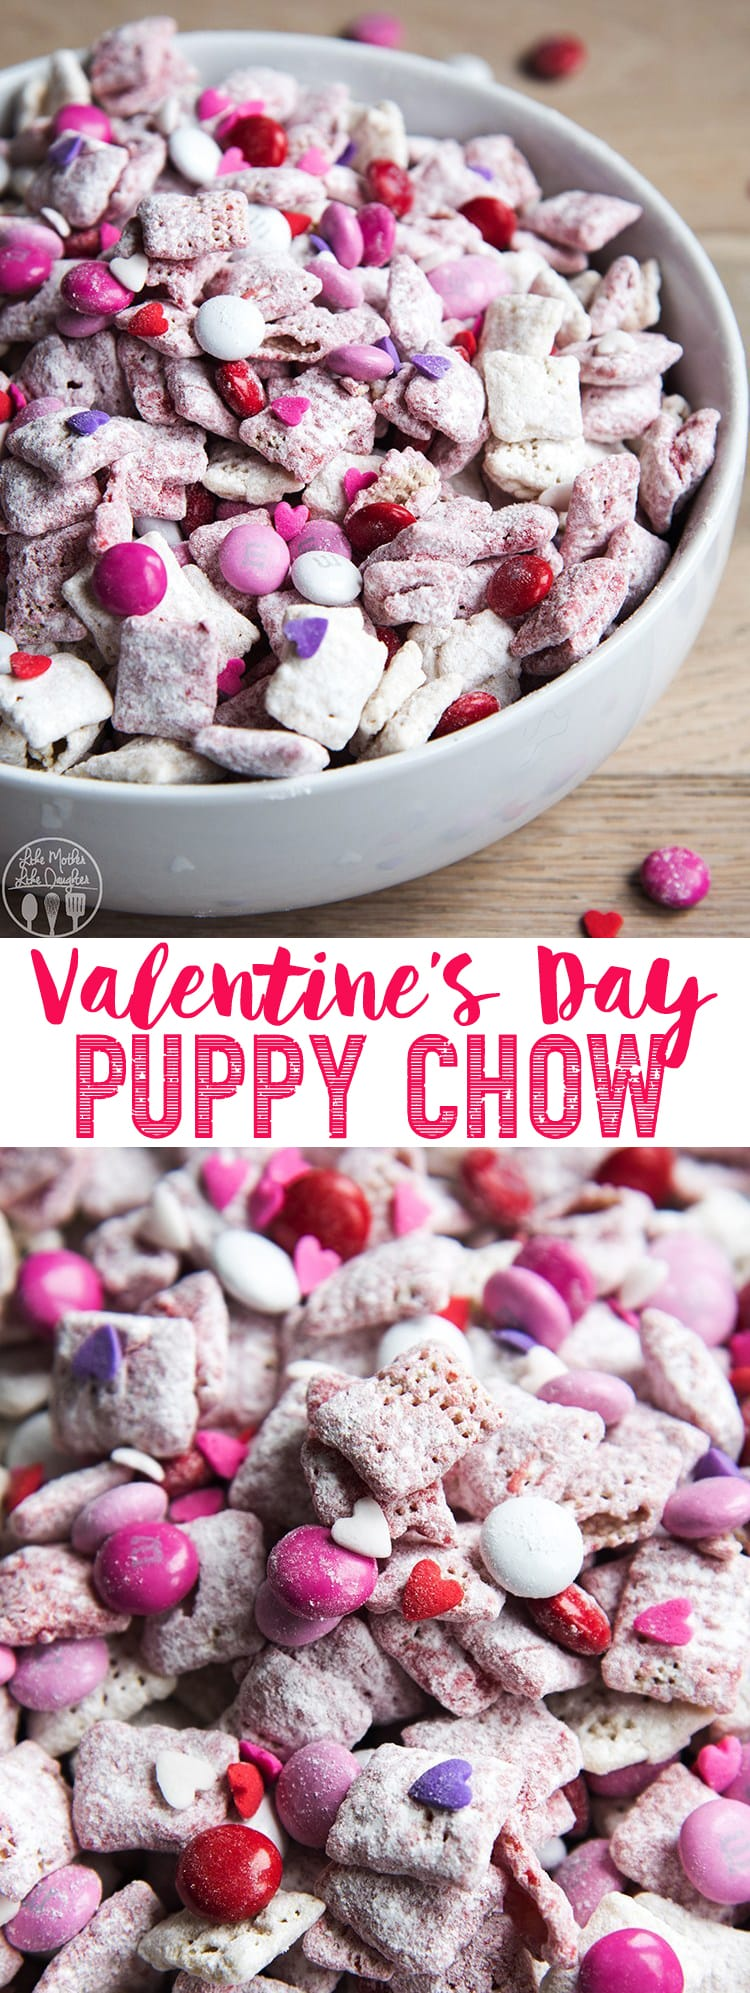 This Valentine Puppy Chow is the perfect Valentine's Day treat with red and white Strawberry muddy buddies scattered with red, pink, and white m&ms, and sprinkles. #ValentinesDay #Valentines #PuppyChow #MuddyBuddies #SnackMix #Valentine